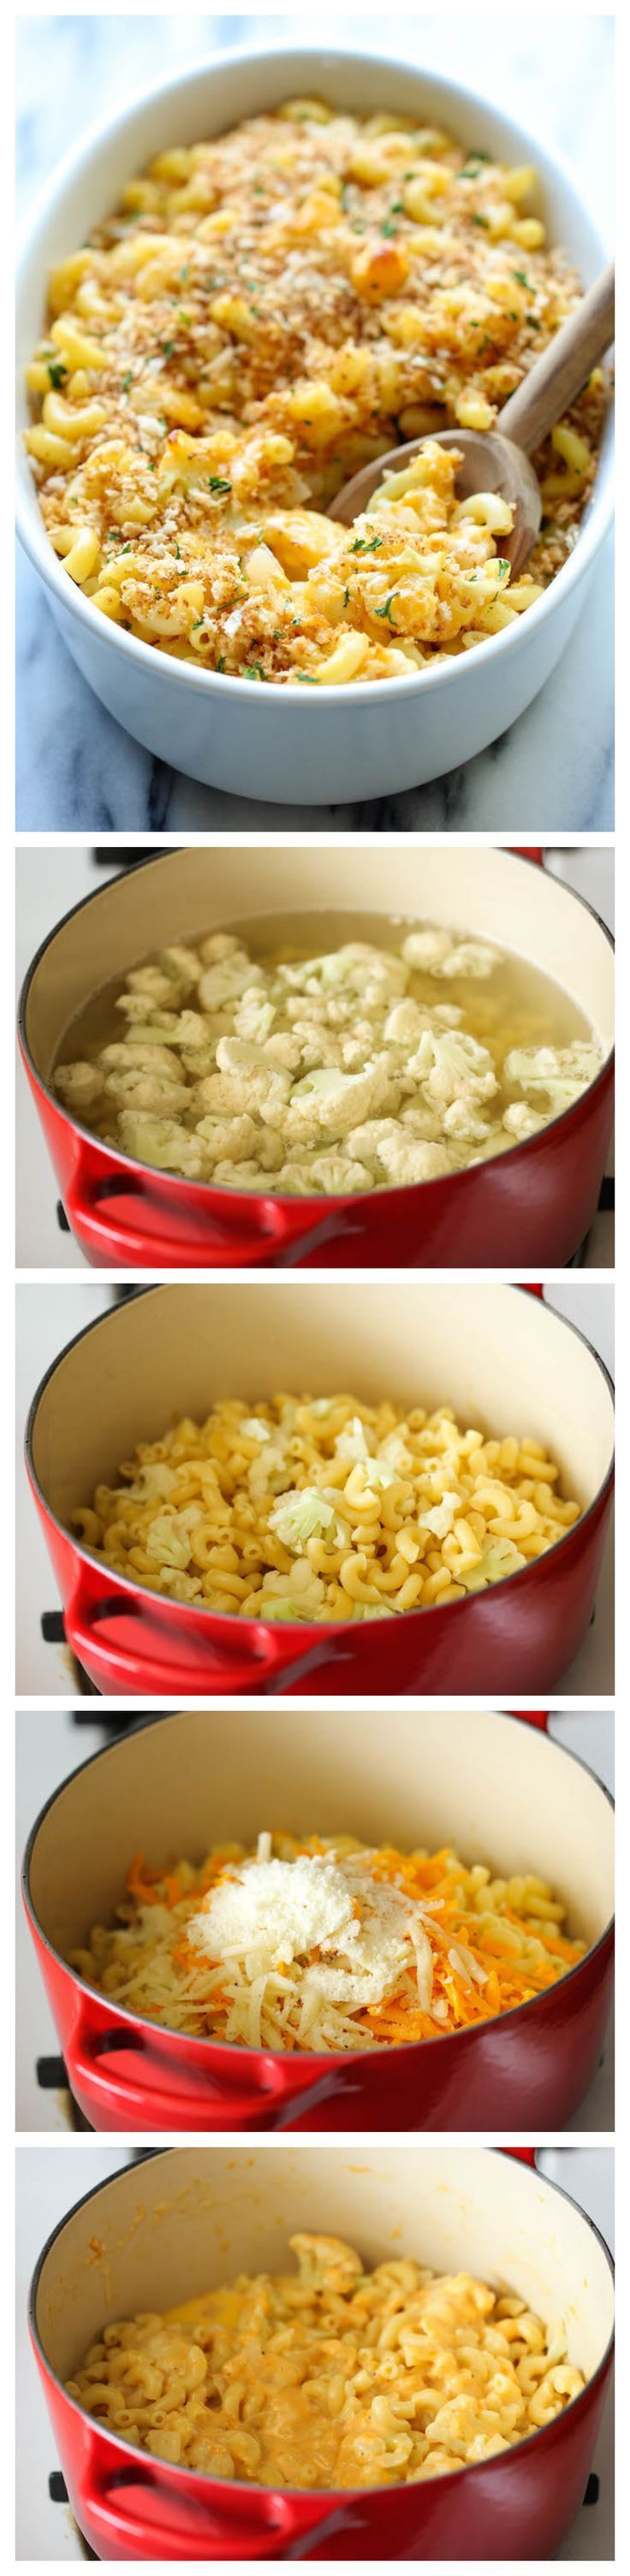 "Skinny Cauliflower Mac and Cheese by damndelicious"" A lightened-up mac and cheese that you can eat guilt-free. #Pasta #Cauliflower #Mac_Cheese"